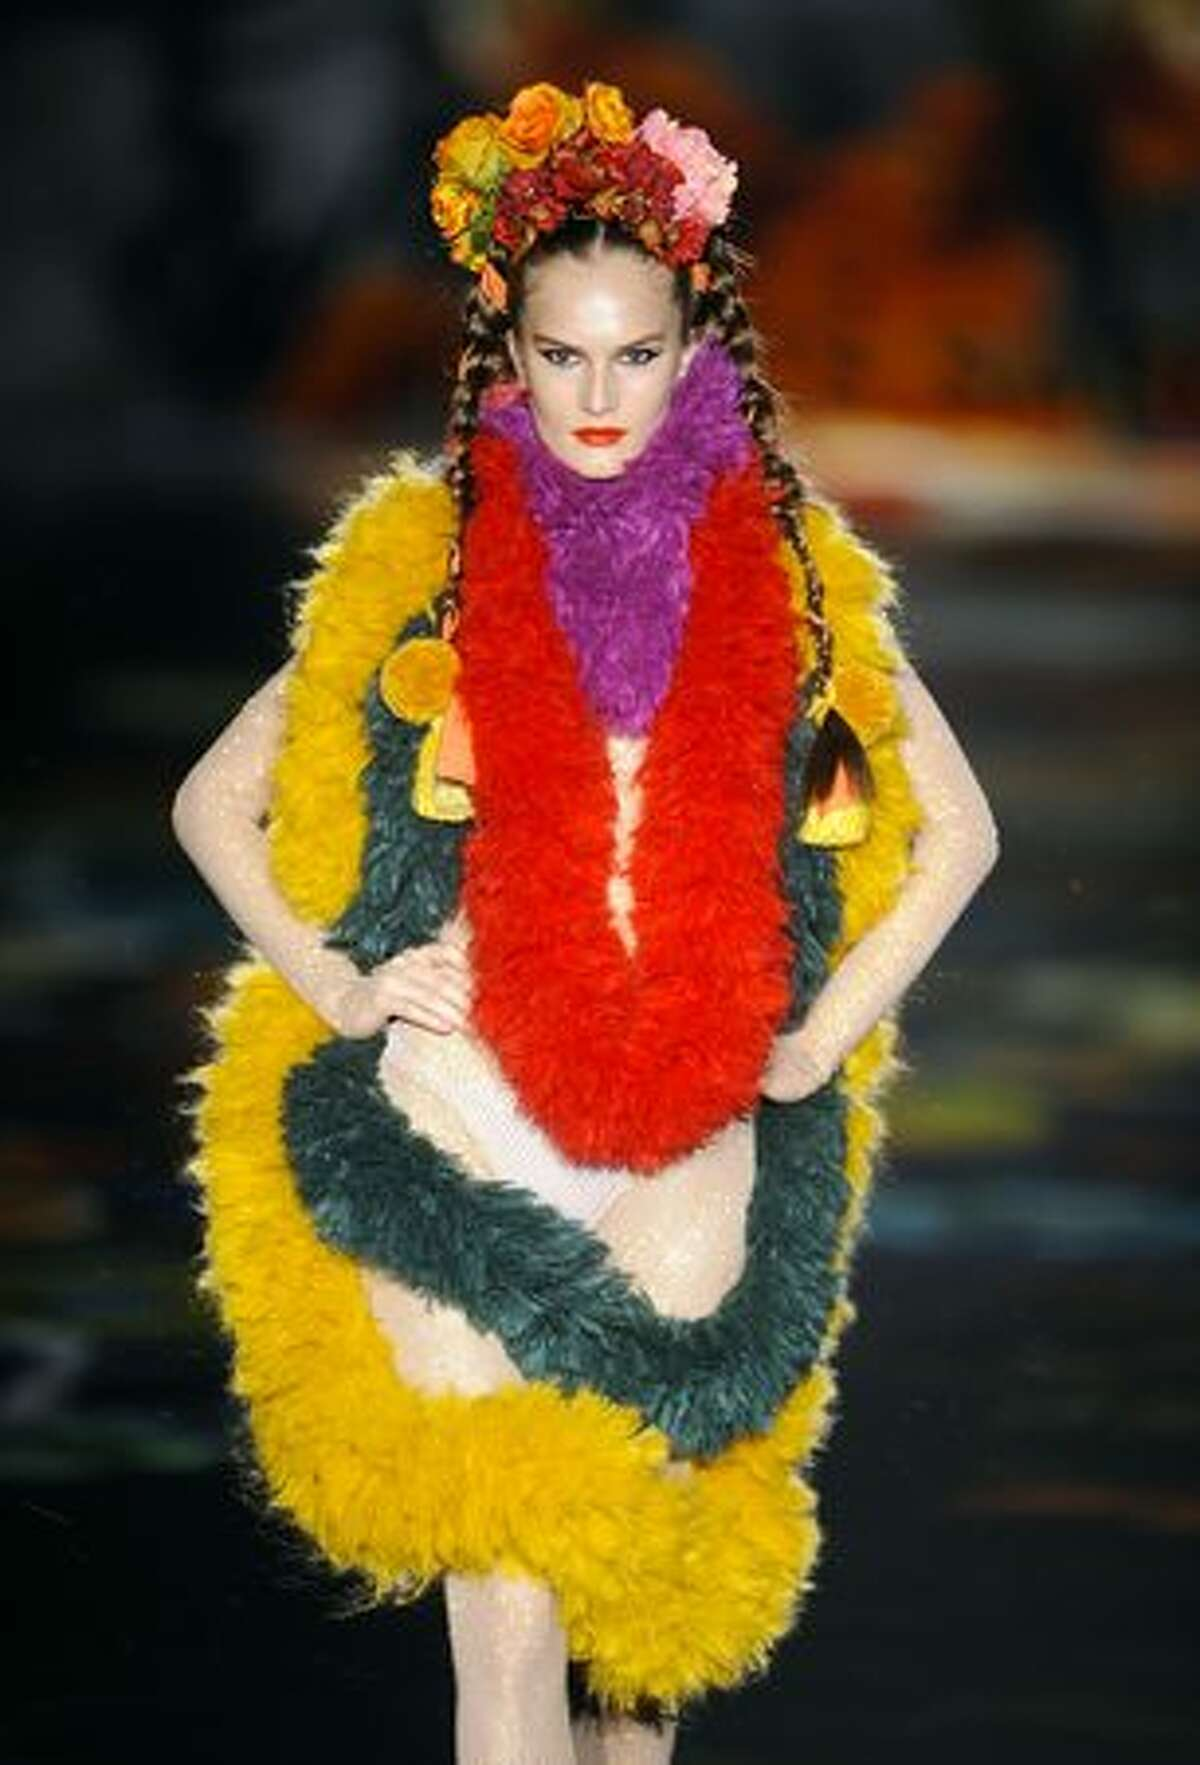 A model displays a creation by designer Andres Sarda during the Madrid Cibeles Fashion week in Madrid.